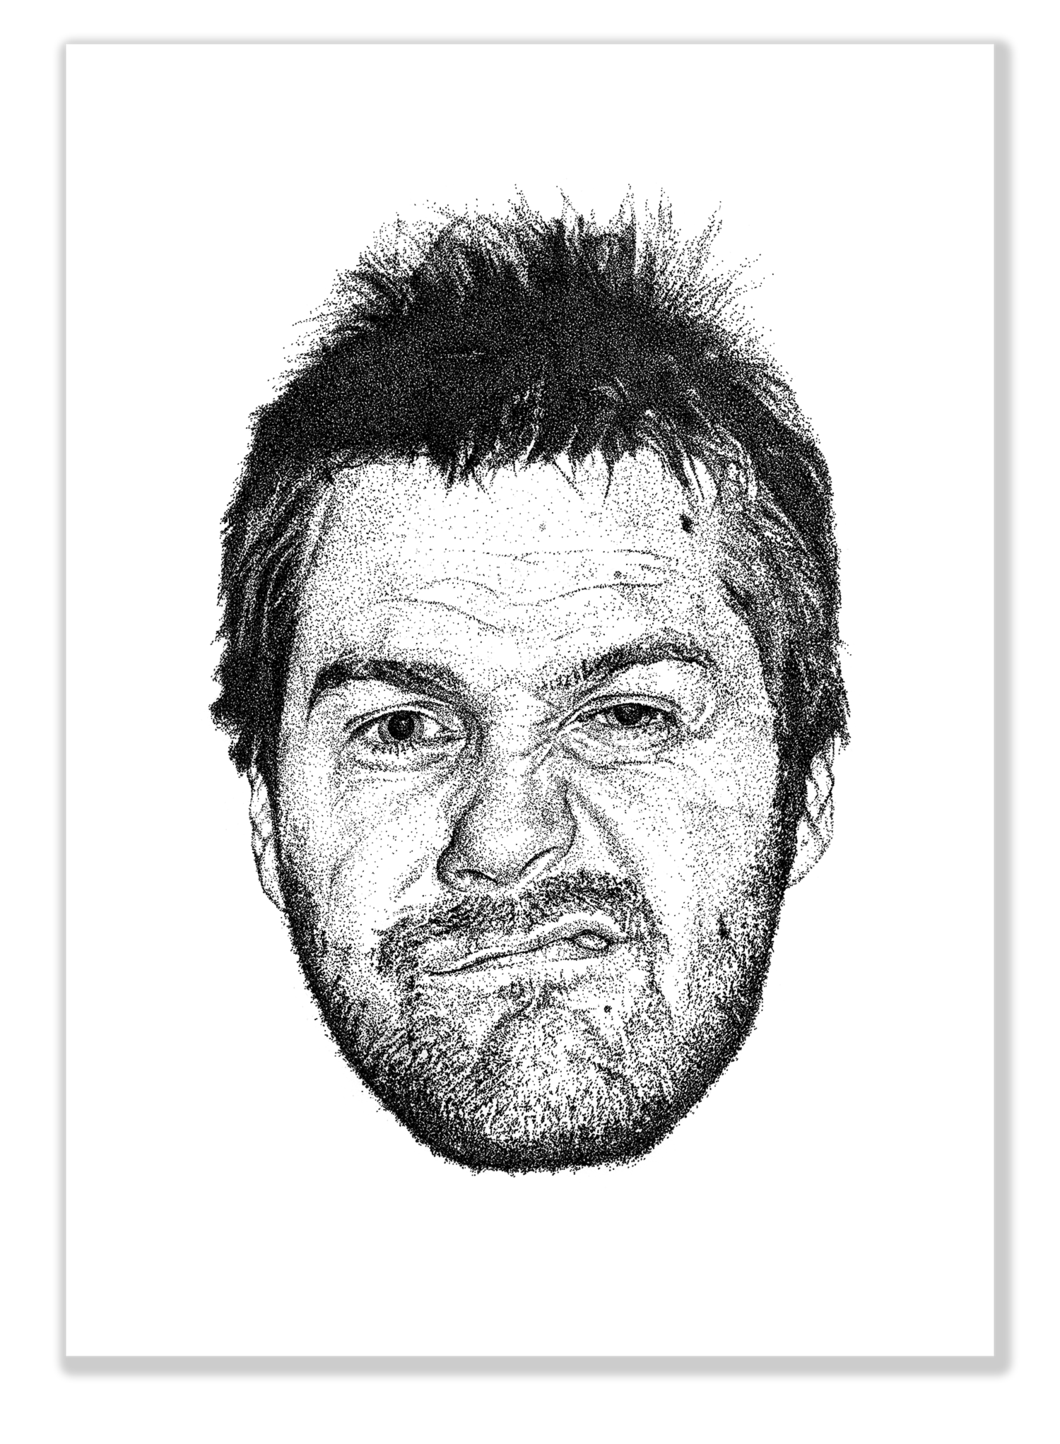 Tom drawing man. T is for meighan